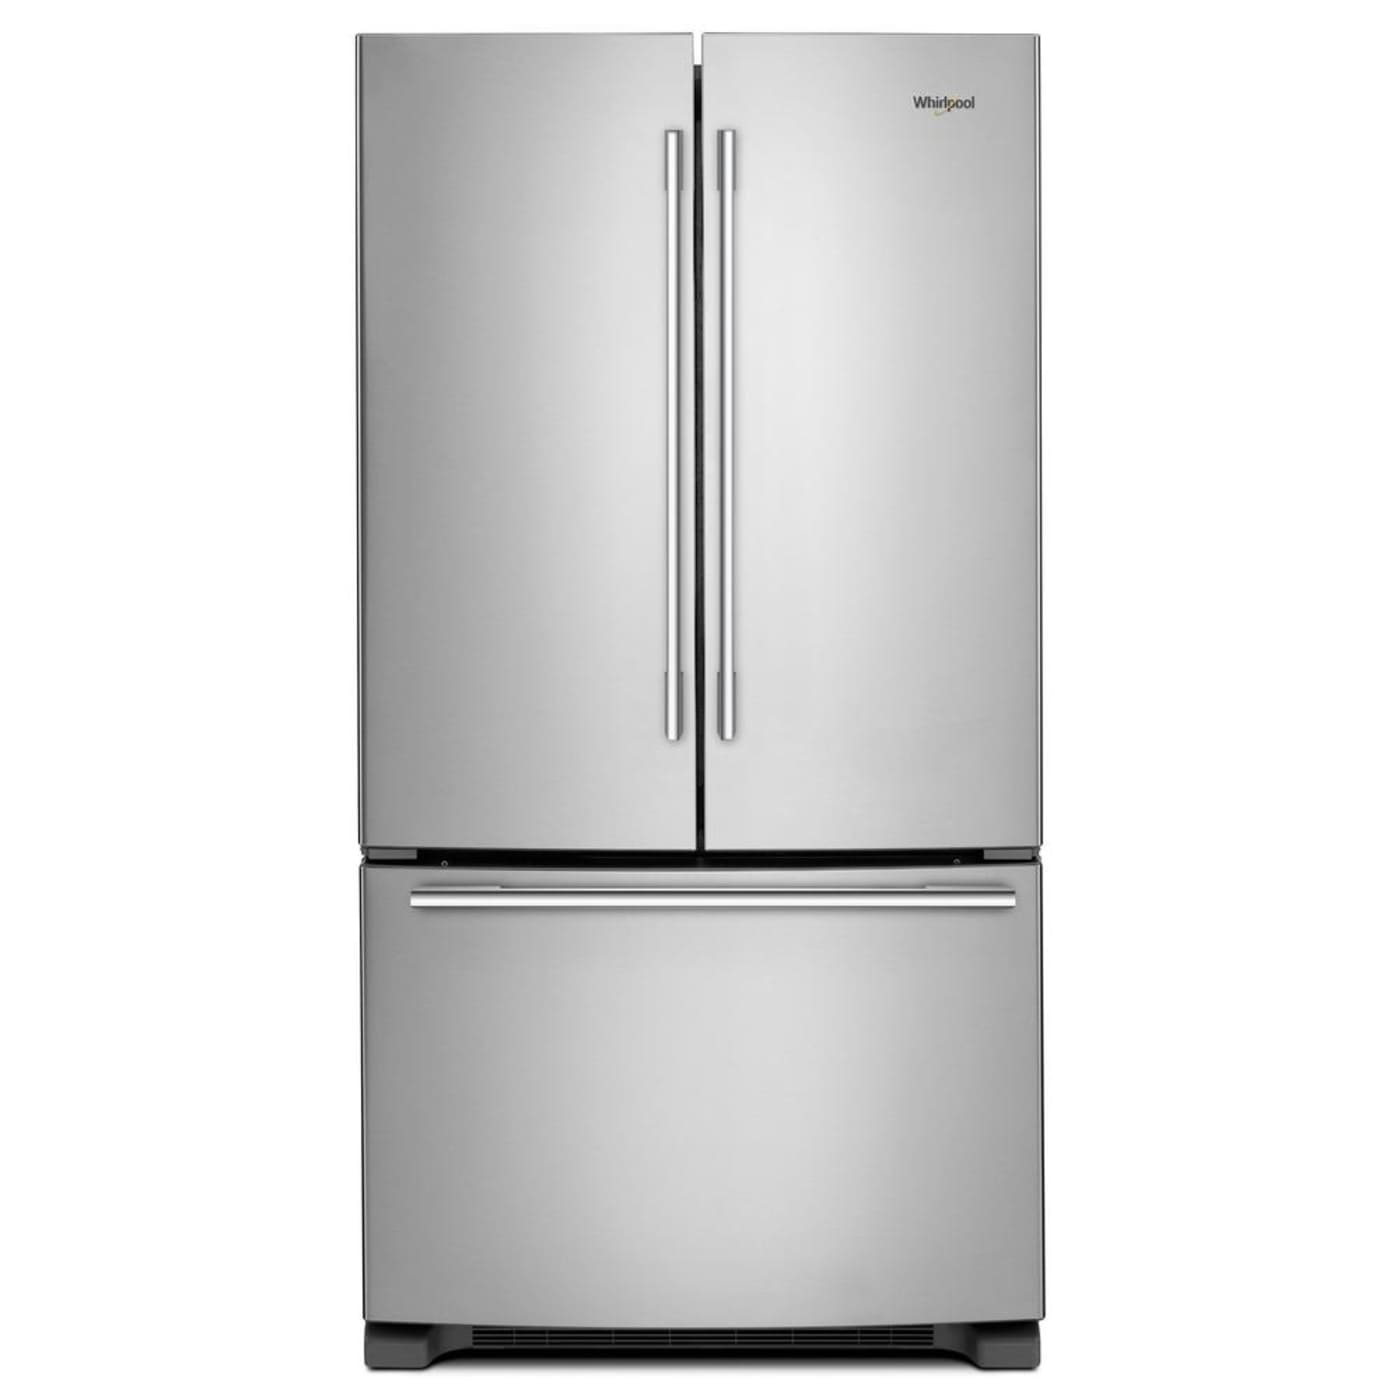 Stainless Steel French Door Refrigerator  Energy Star Whirlpool Wrfa32Smhz